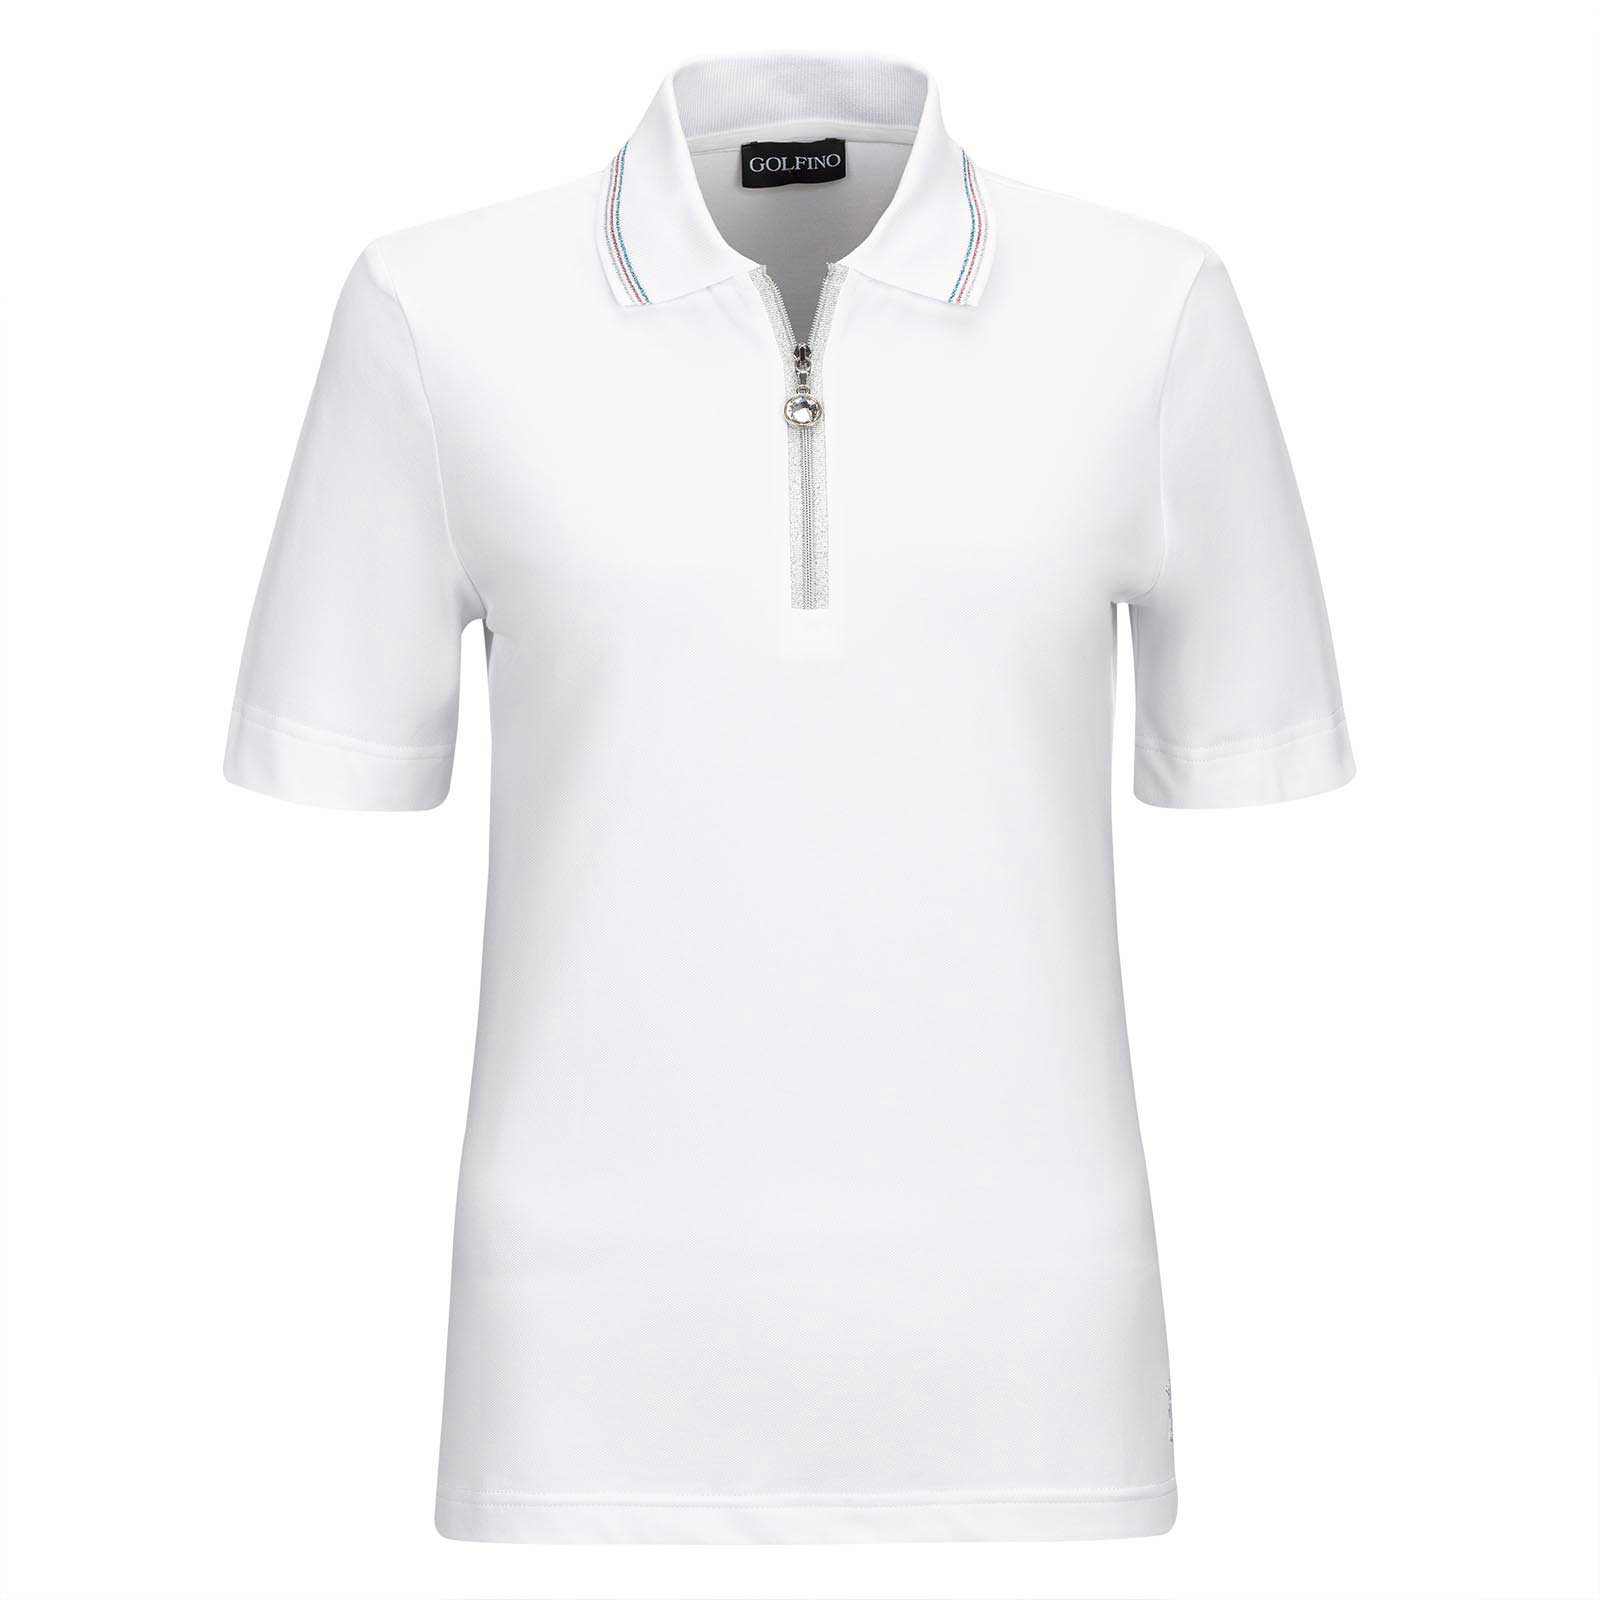 Damen Kurzarm Funktions-Golfpolo mit Sun Protection aus feiner Cotton-Blend